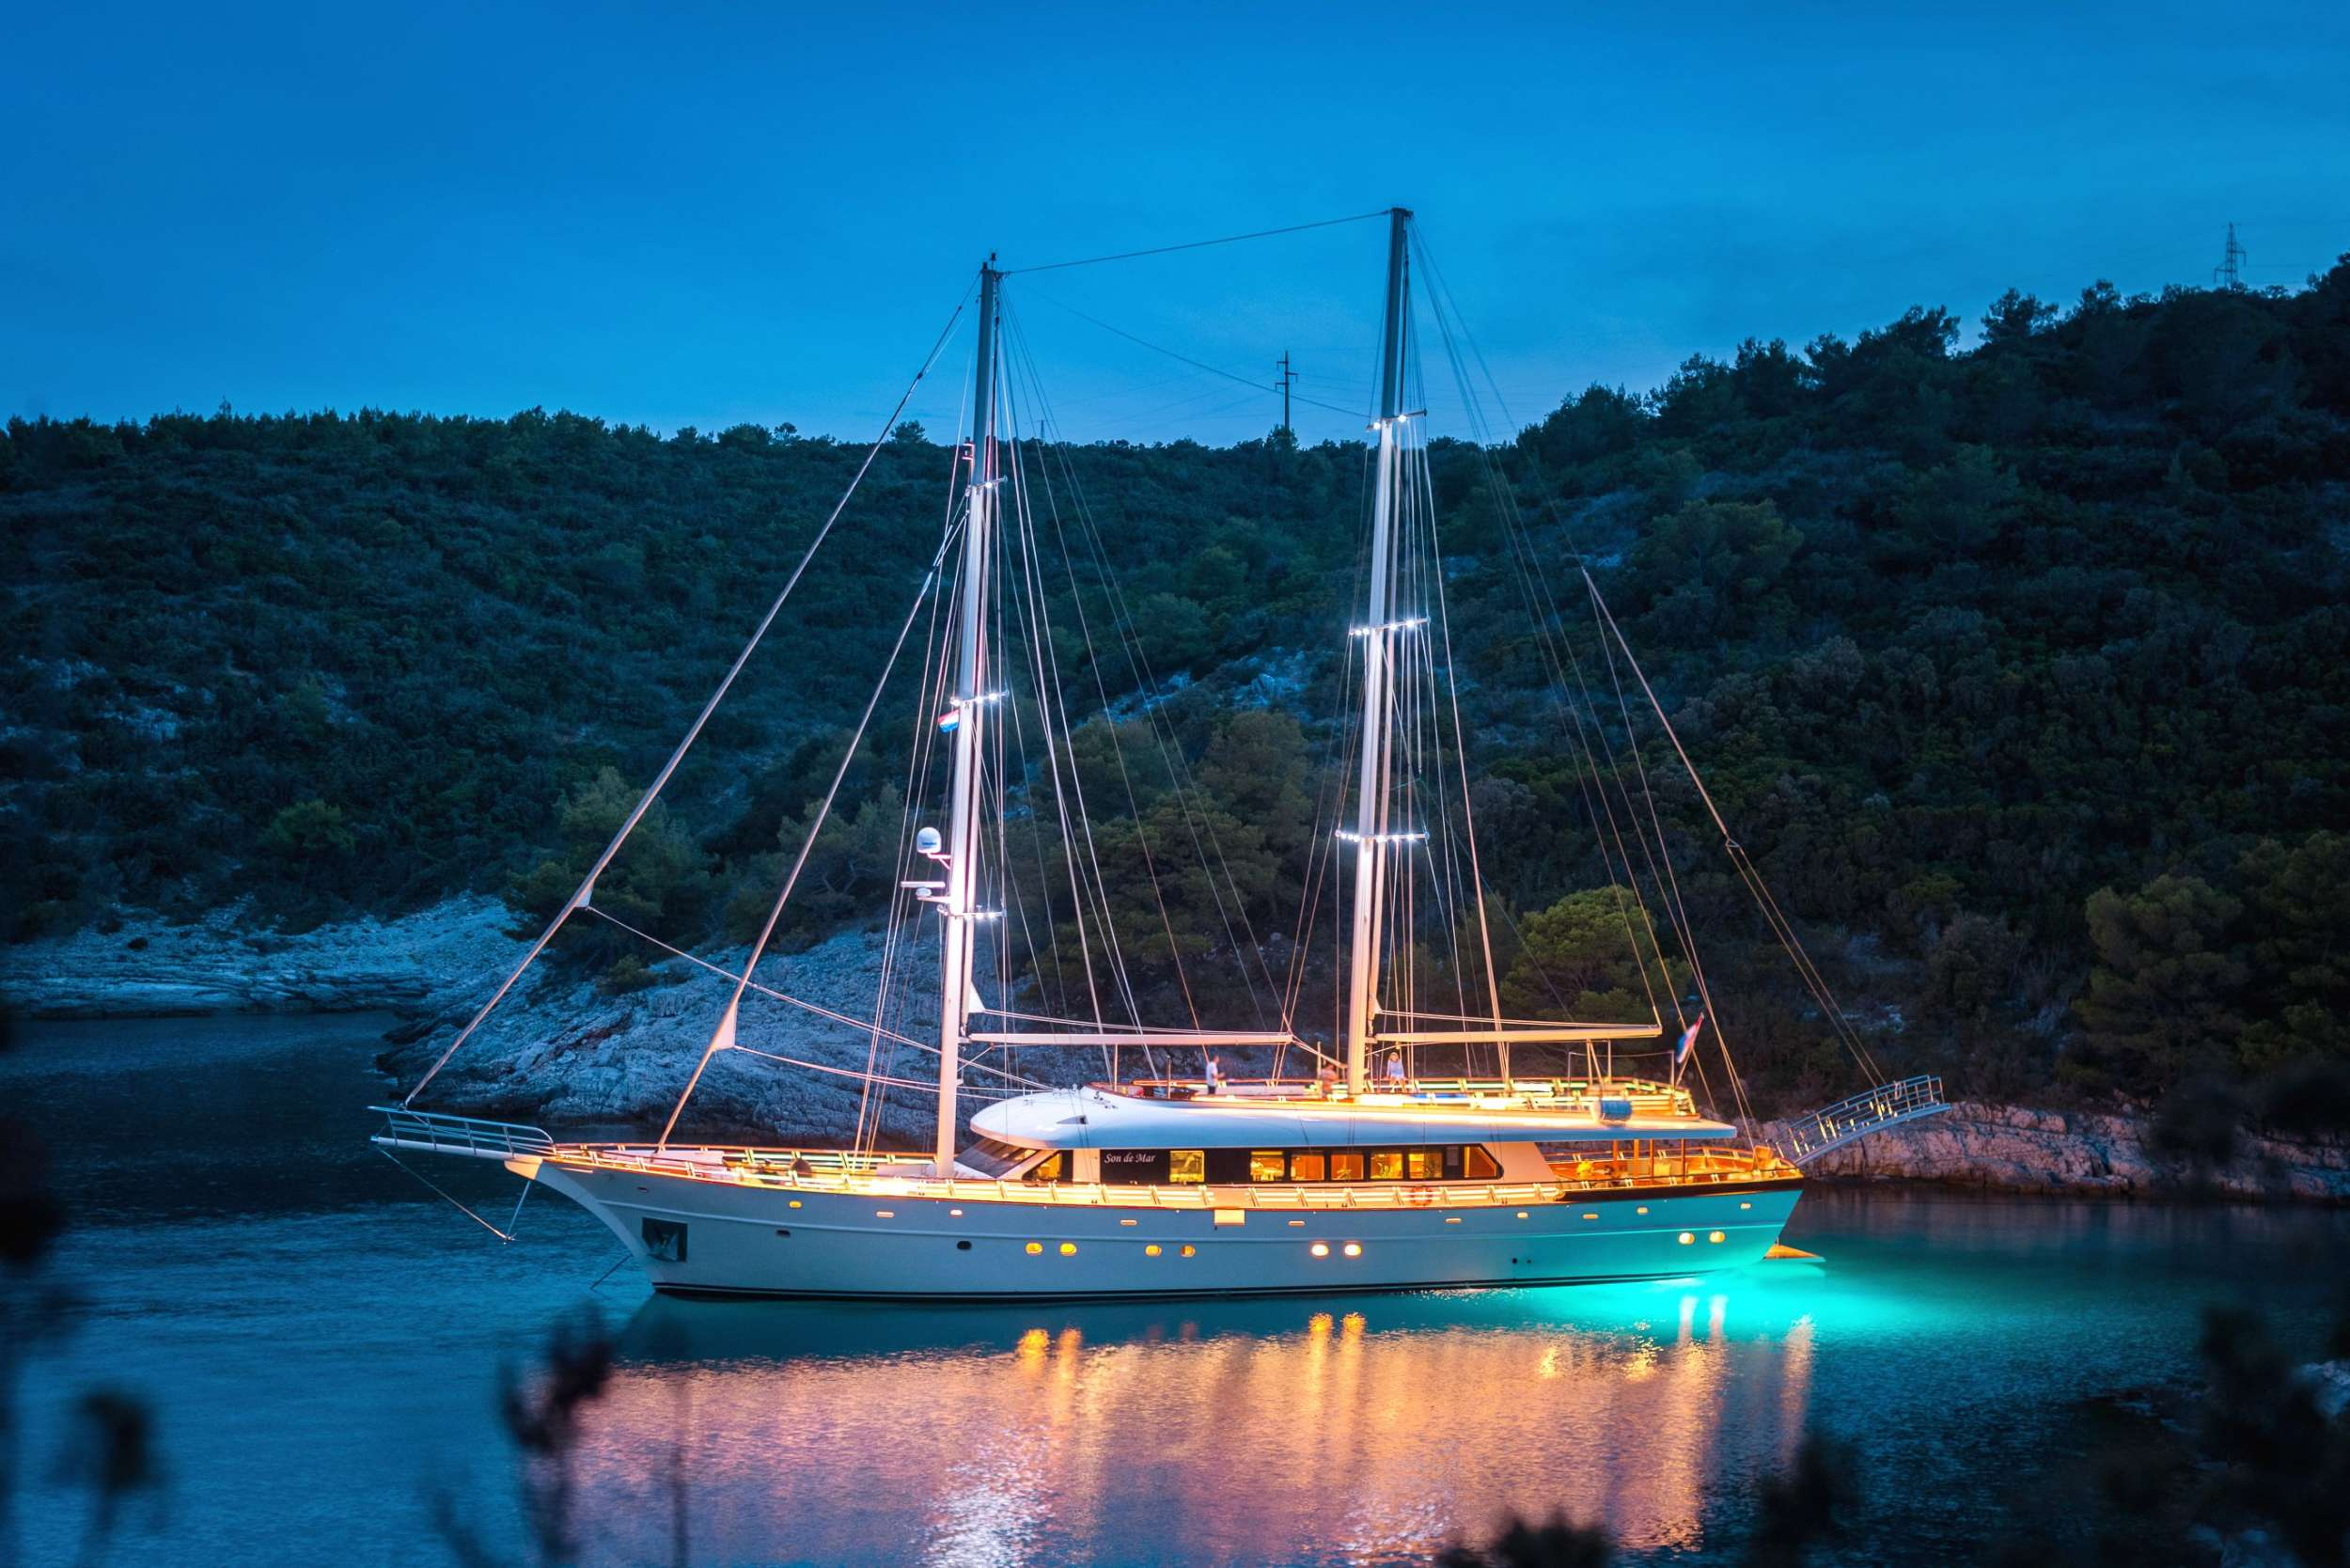 Main image of SON DE MAR yacht